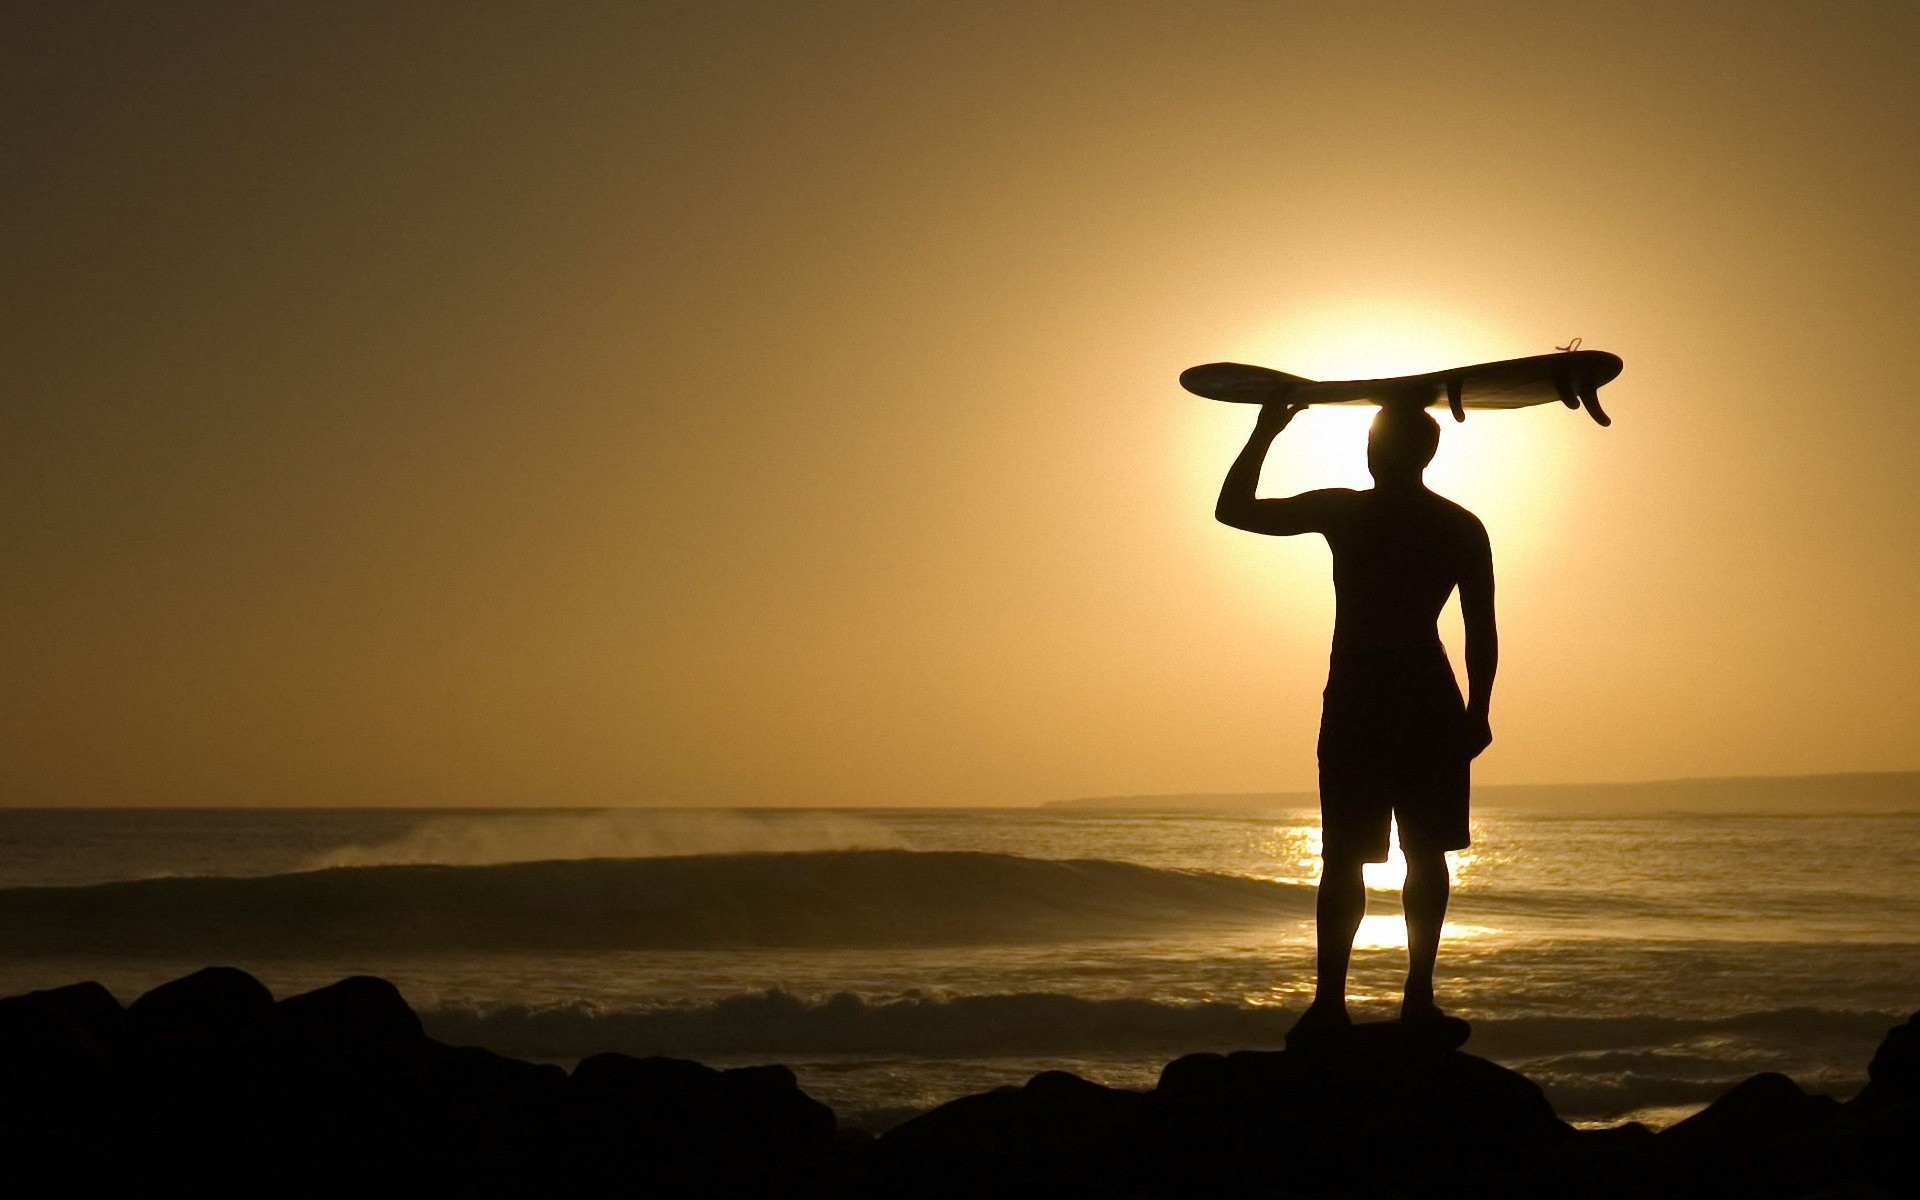 Surfing at sunset Wallpapers, Wallpapers .